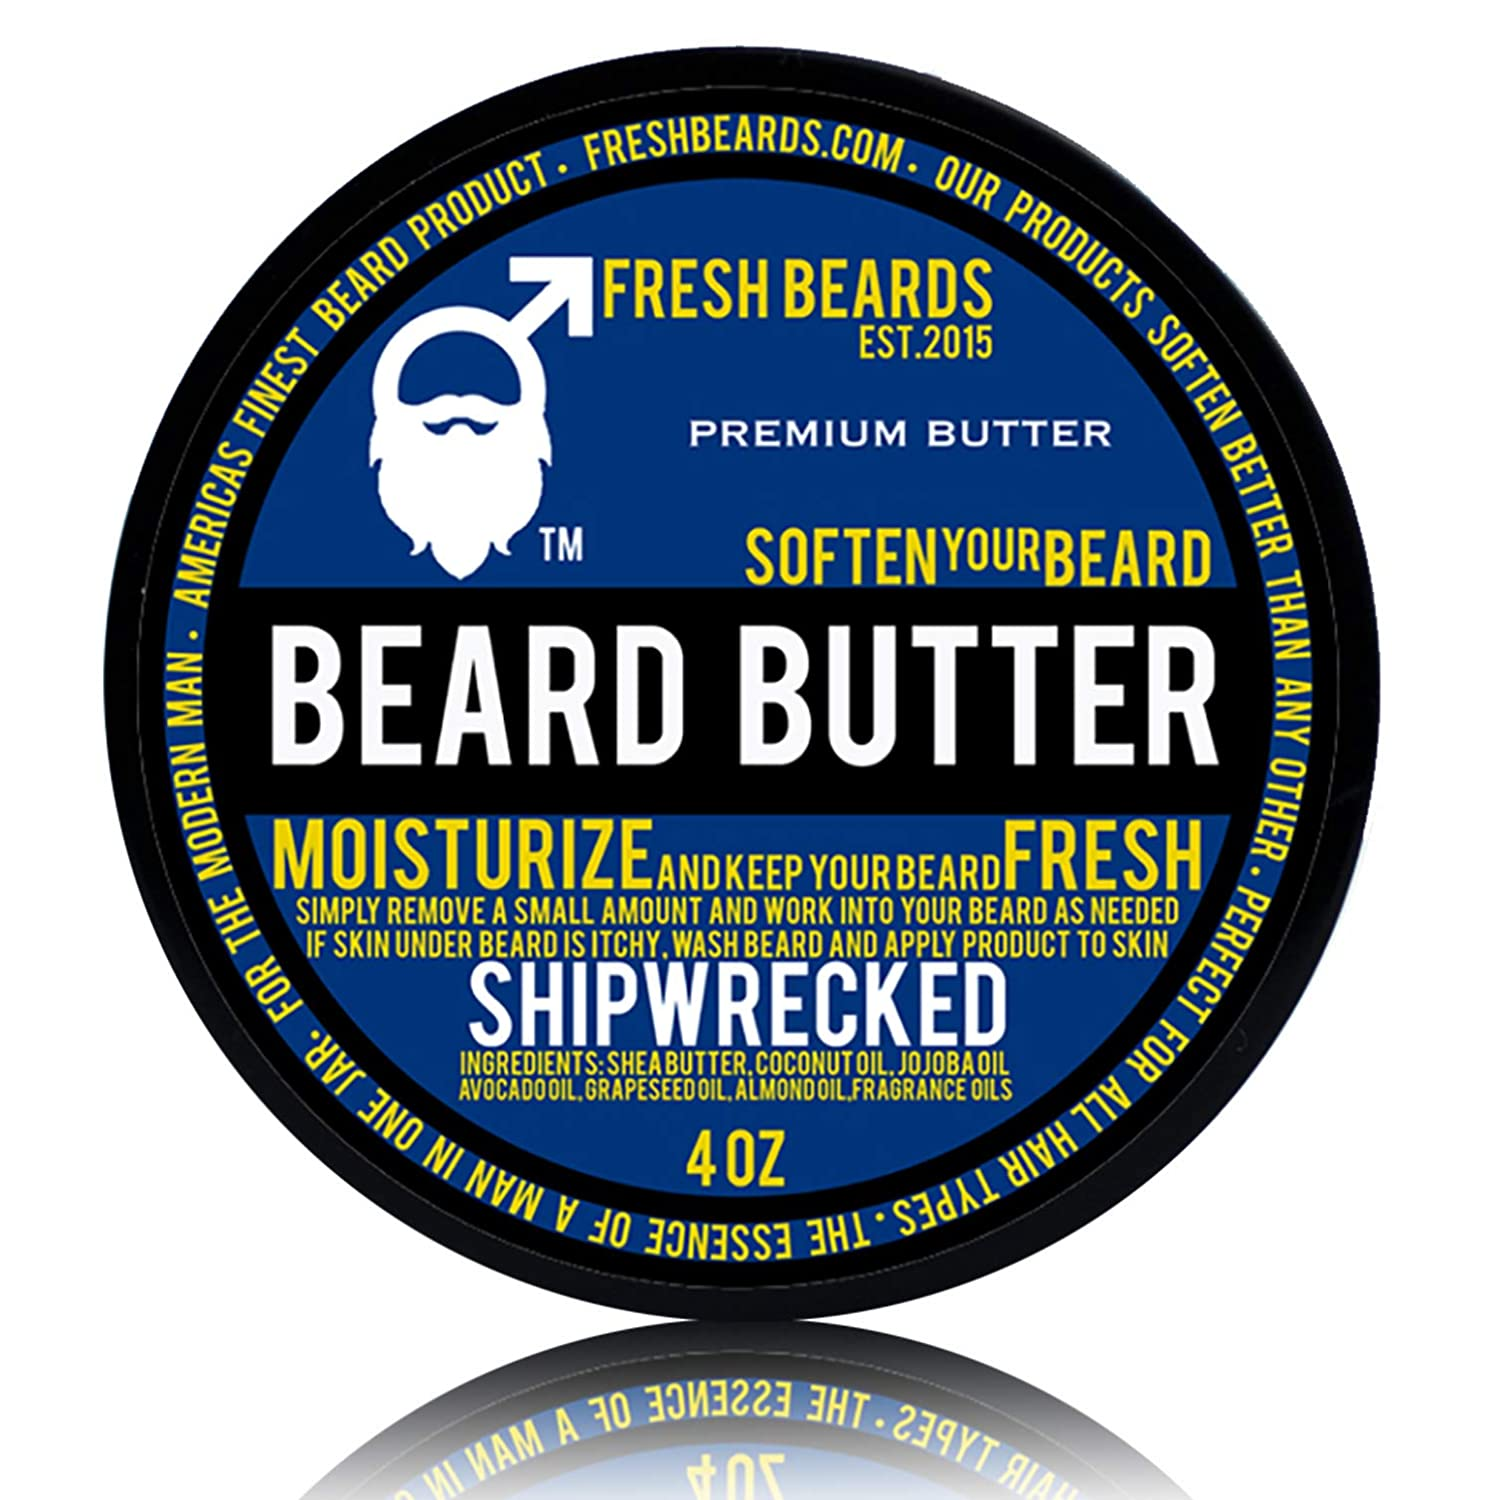 """Shipwrecked"" Beard Butter Fresh Beards"